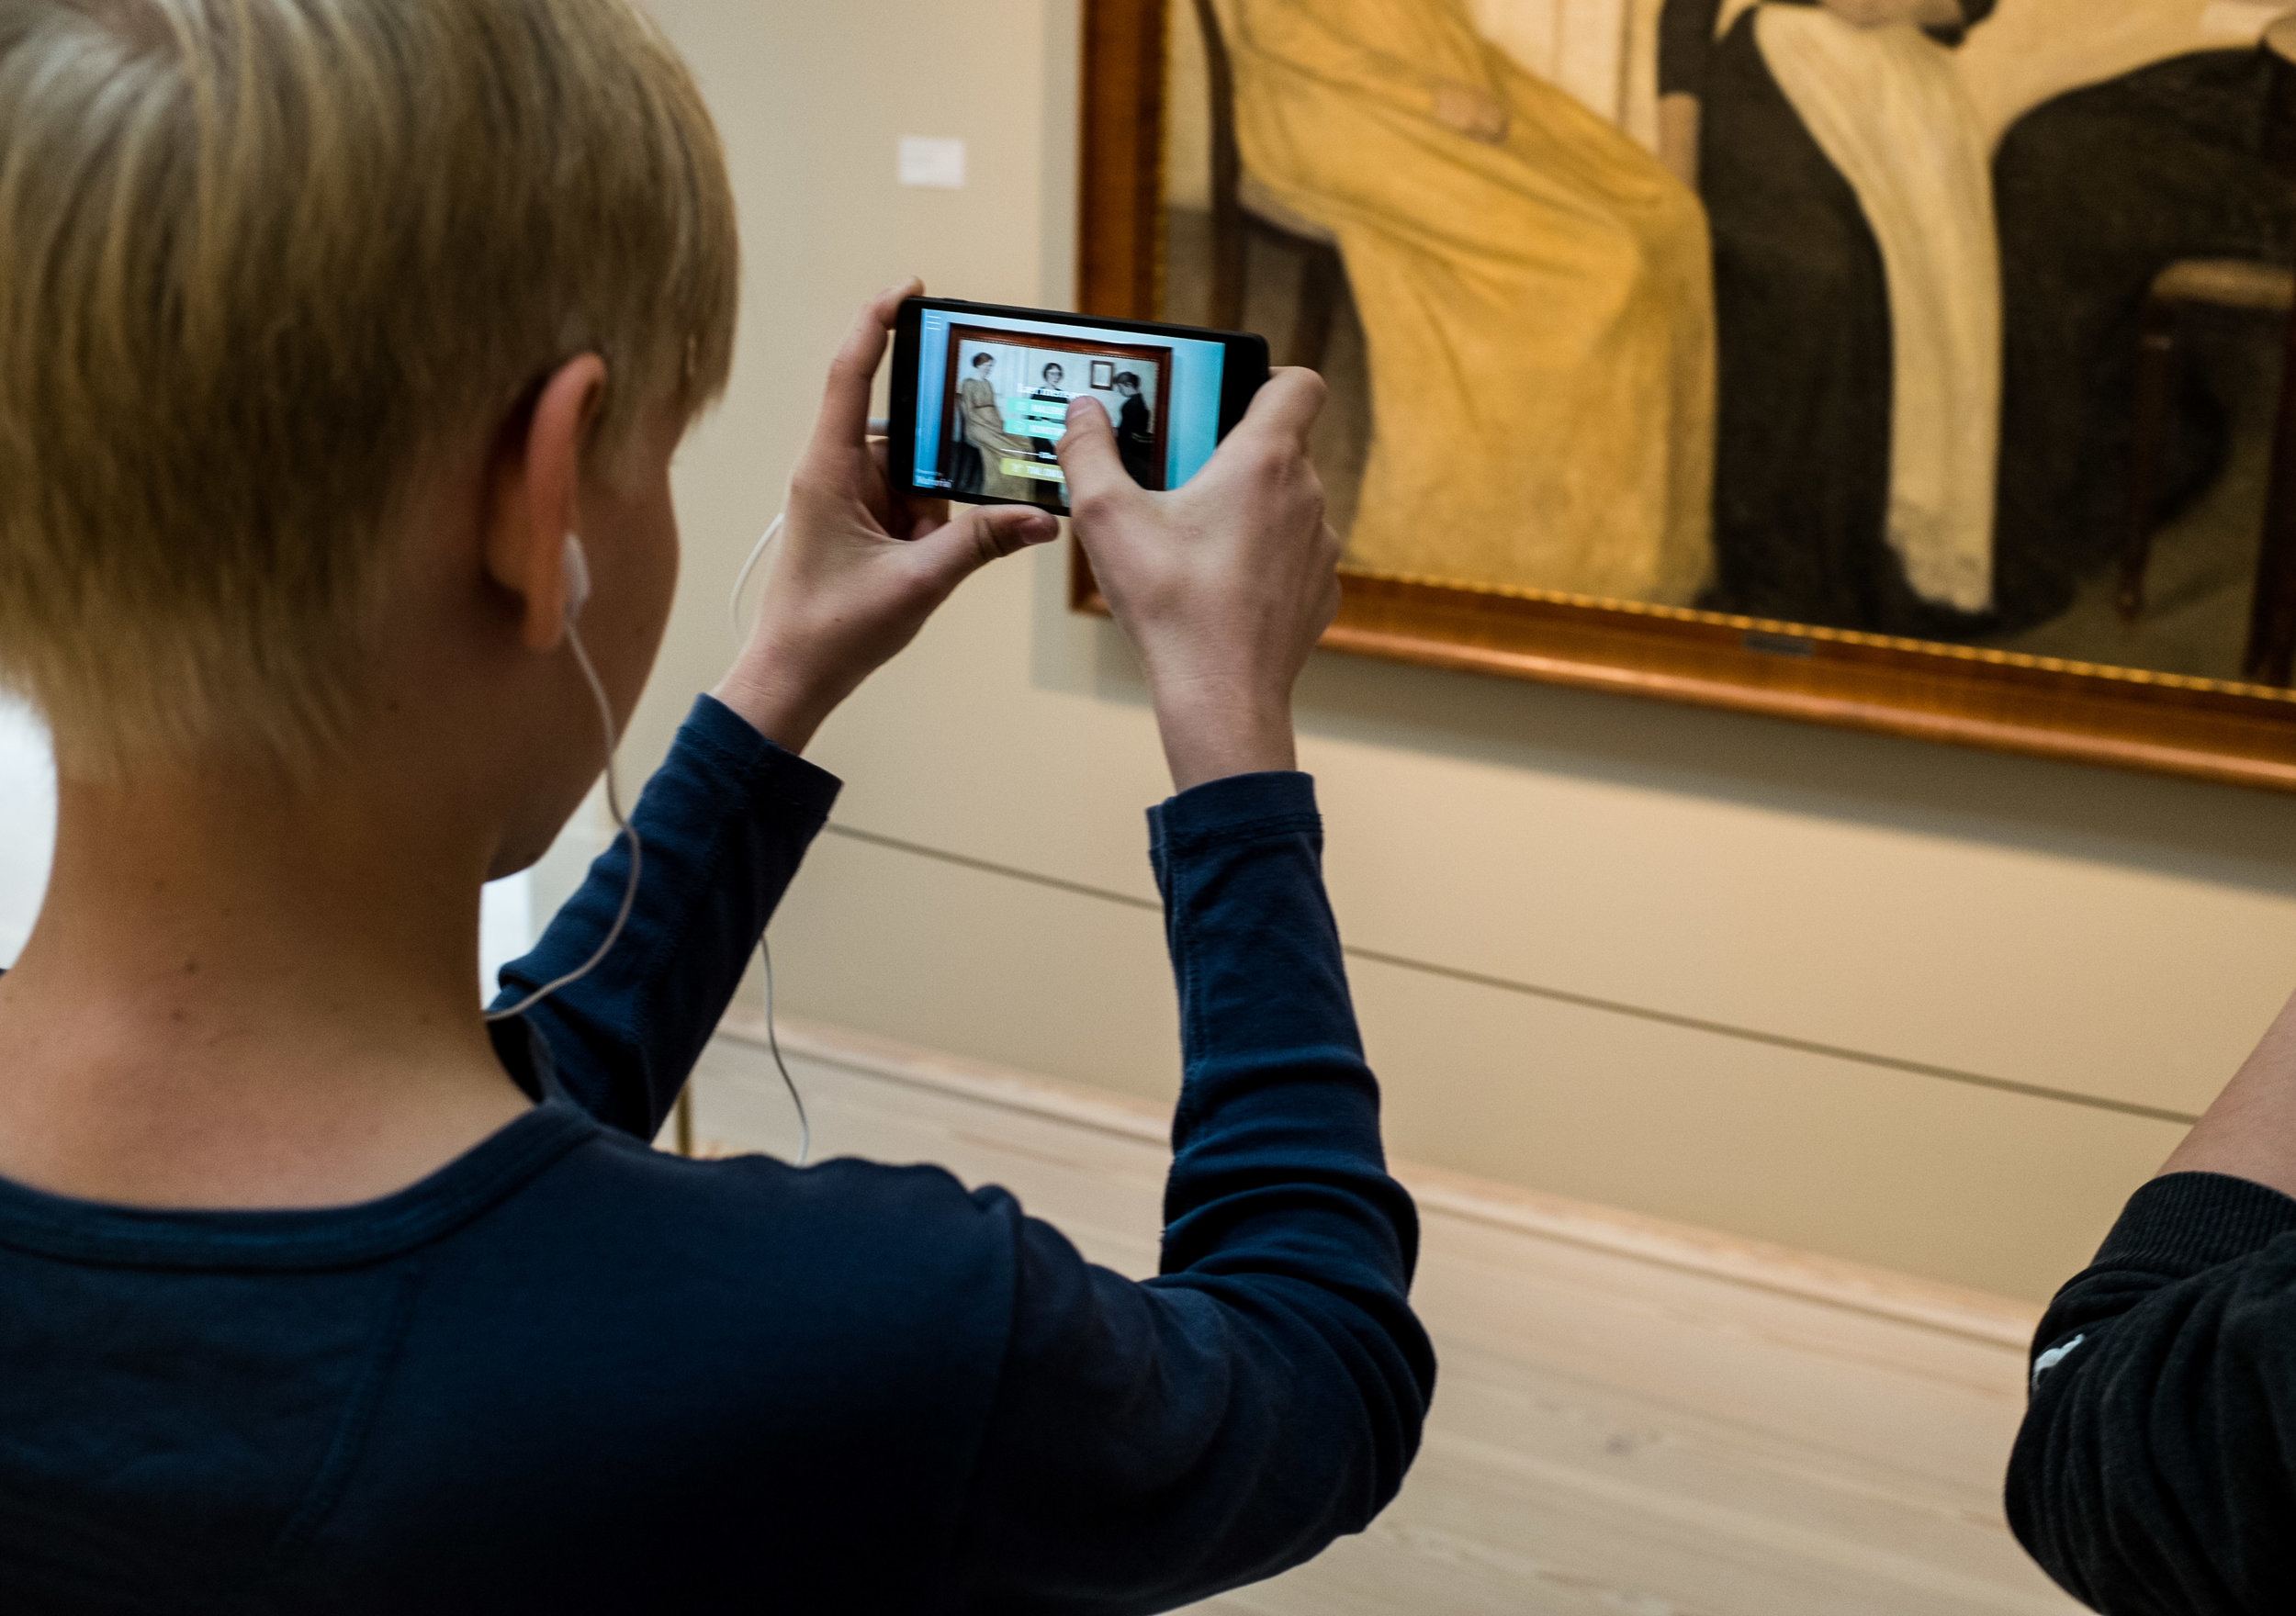 ArtView - An educational guide app for Ribe Art Museum